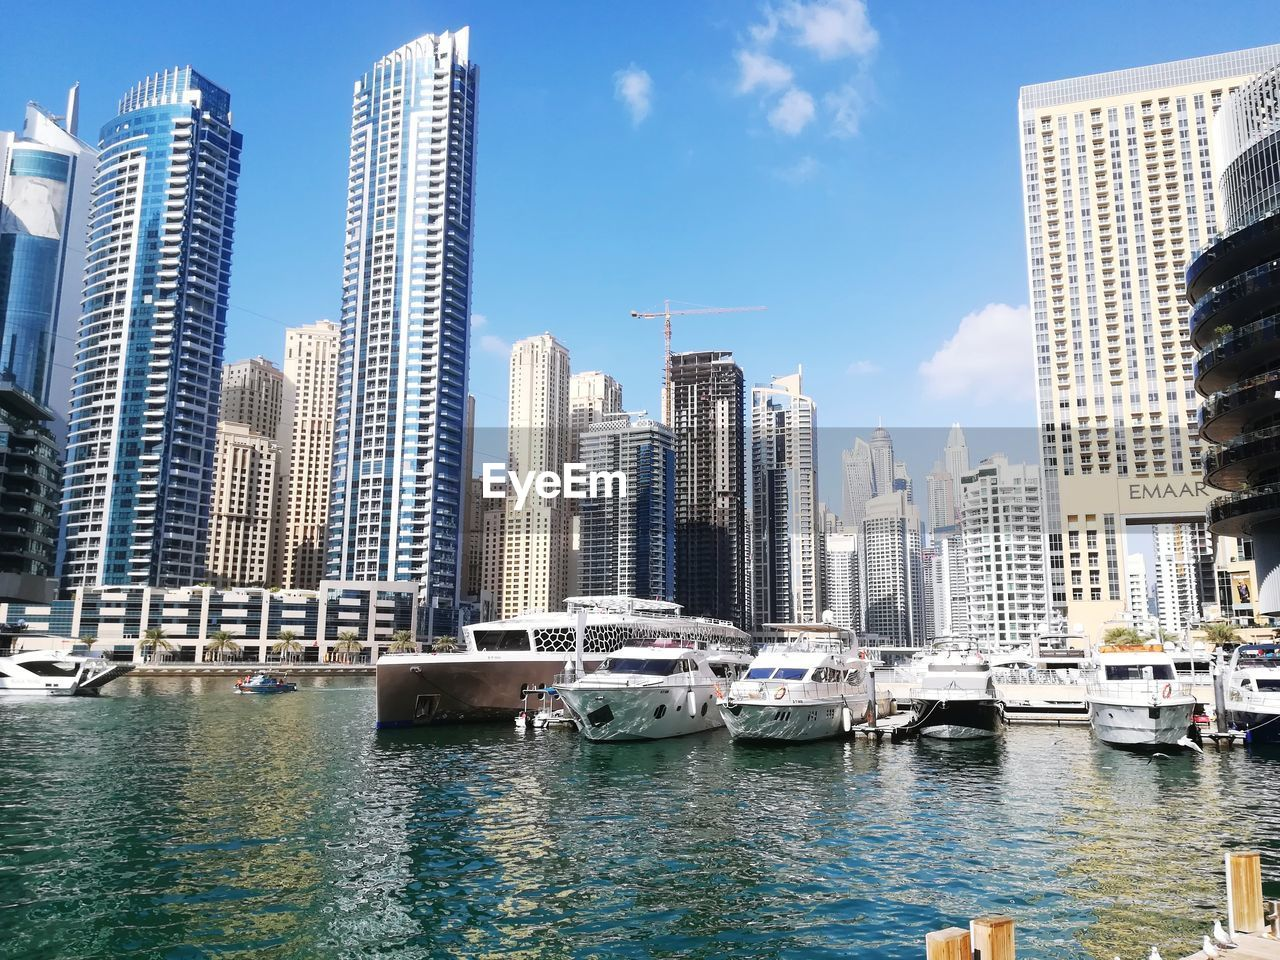 VIEW OF MODERN BUILDINGS IN MARINA